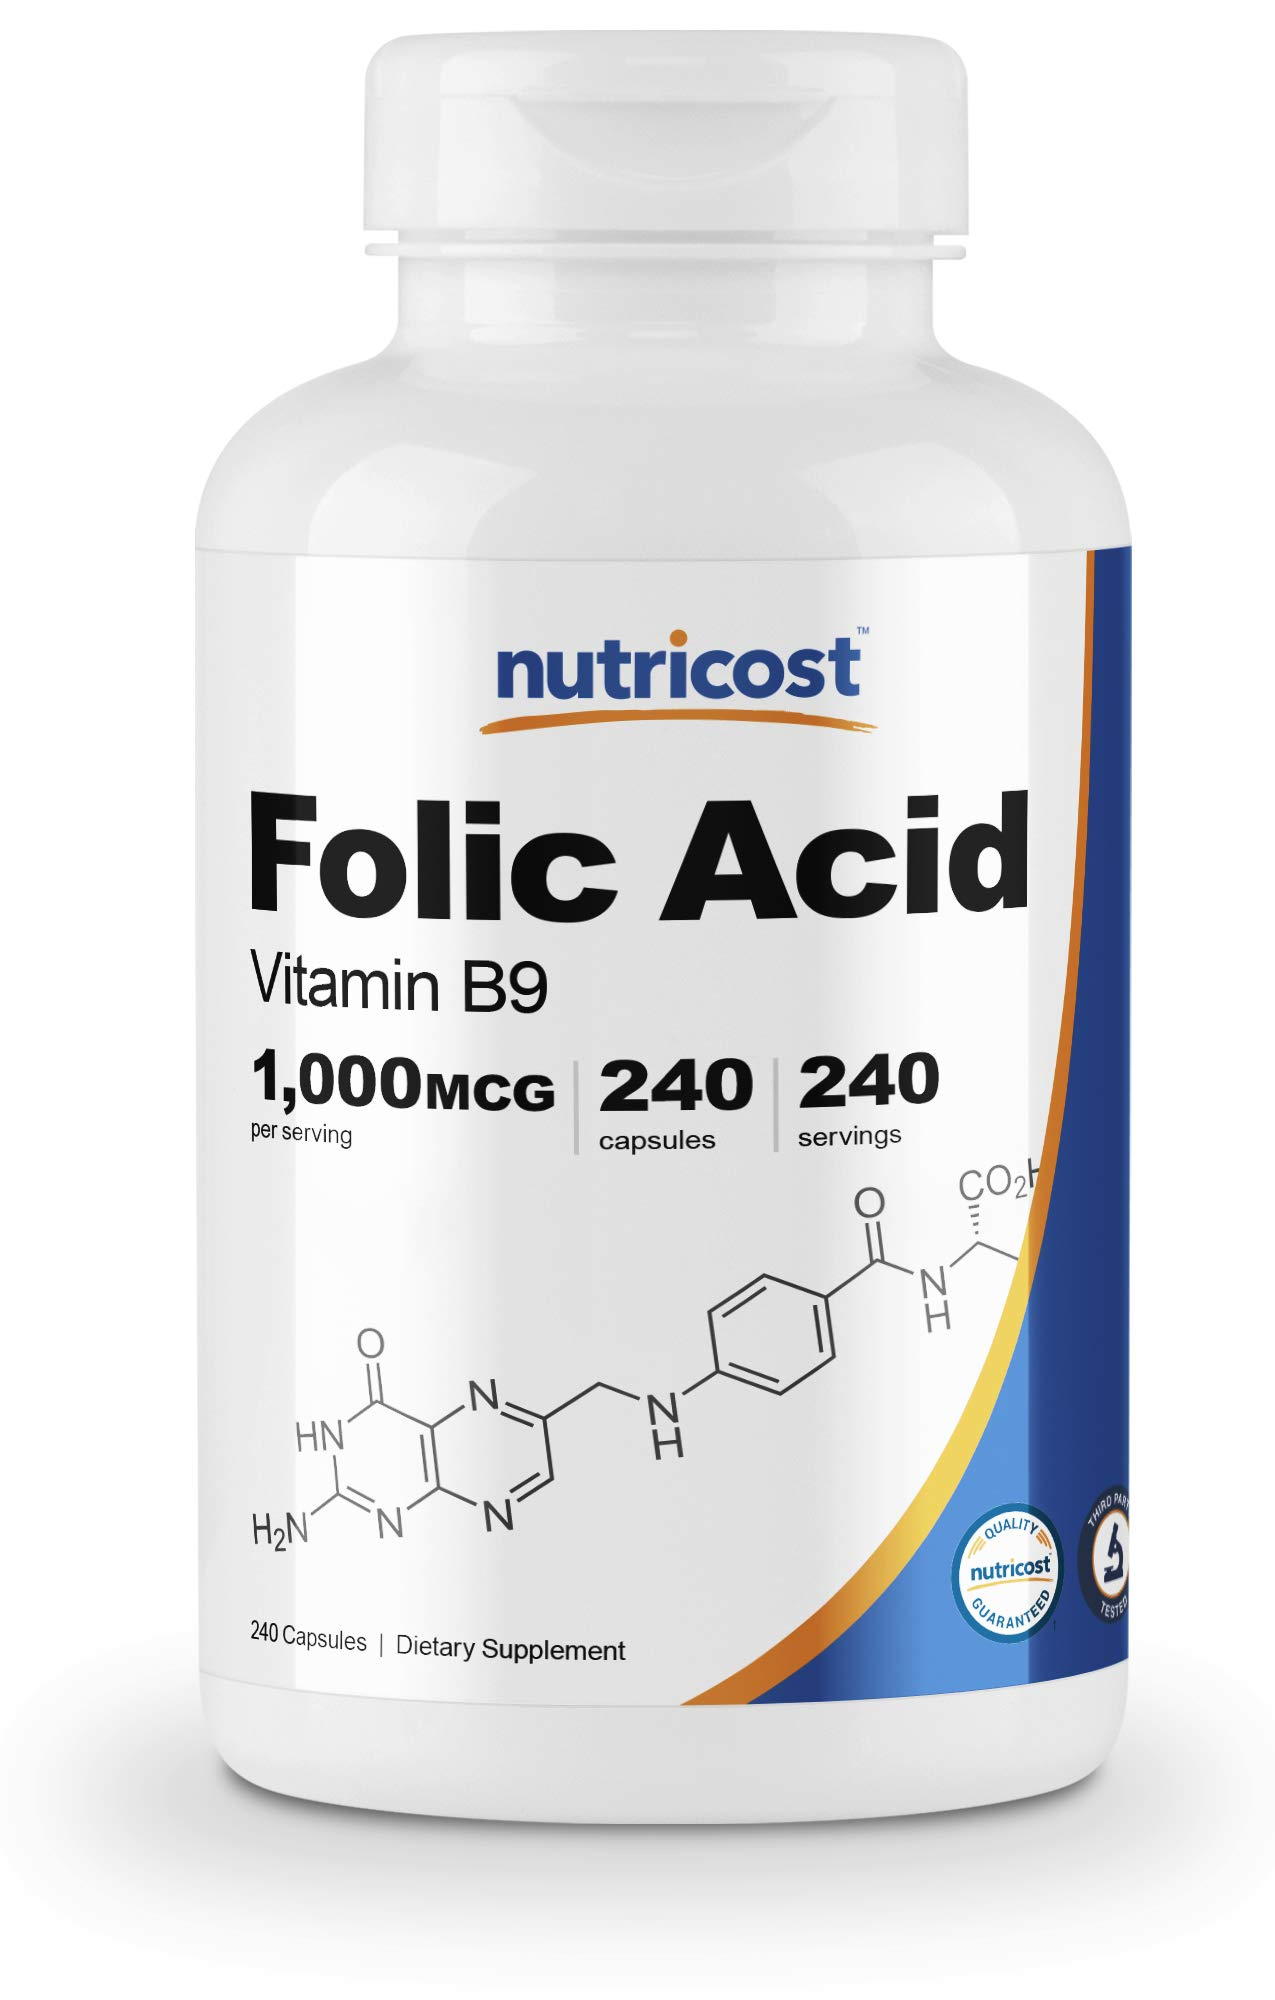 Nutricost Folic Acid (Vitamin B9) 1000 mcg, 240 Capsules by Nutricost